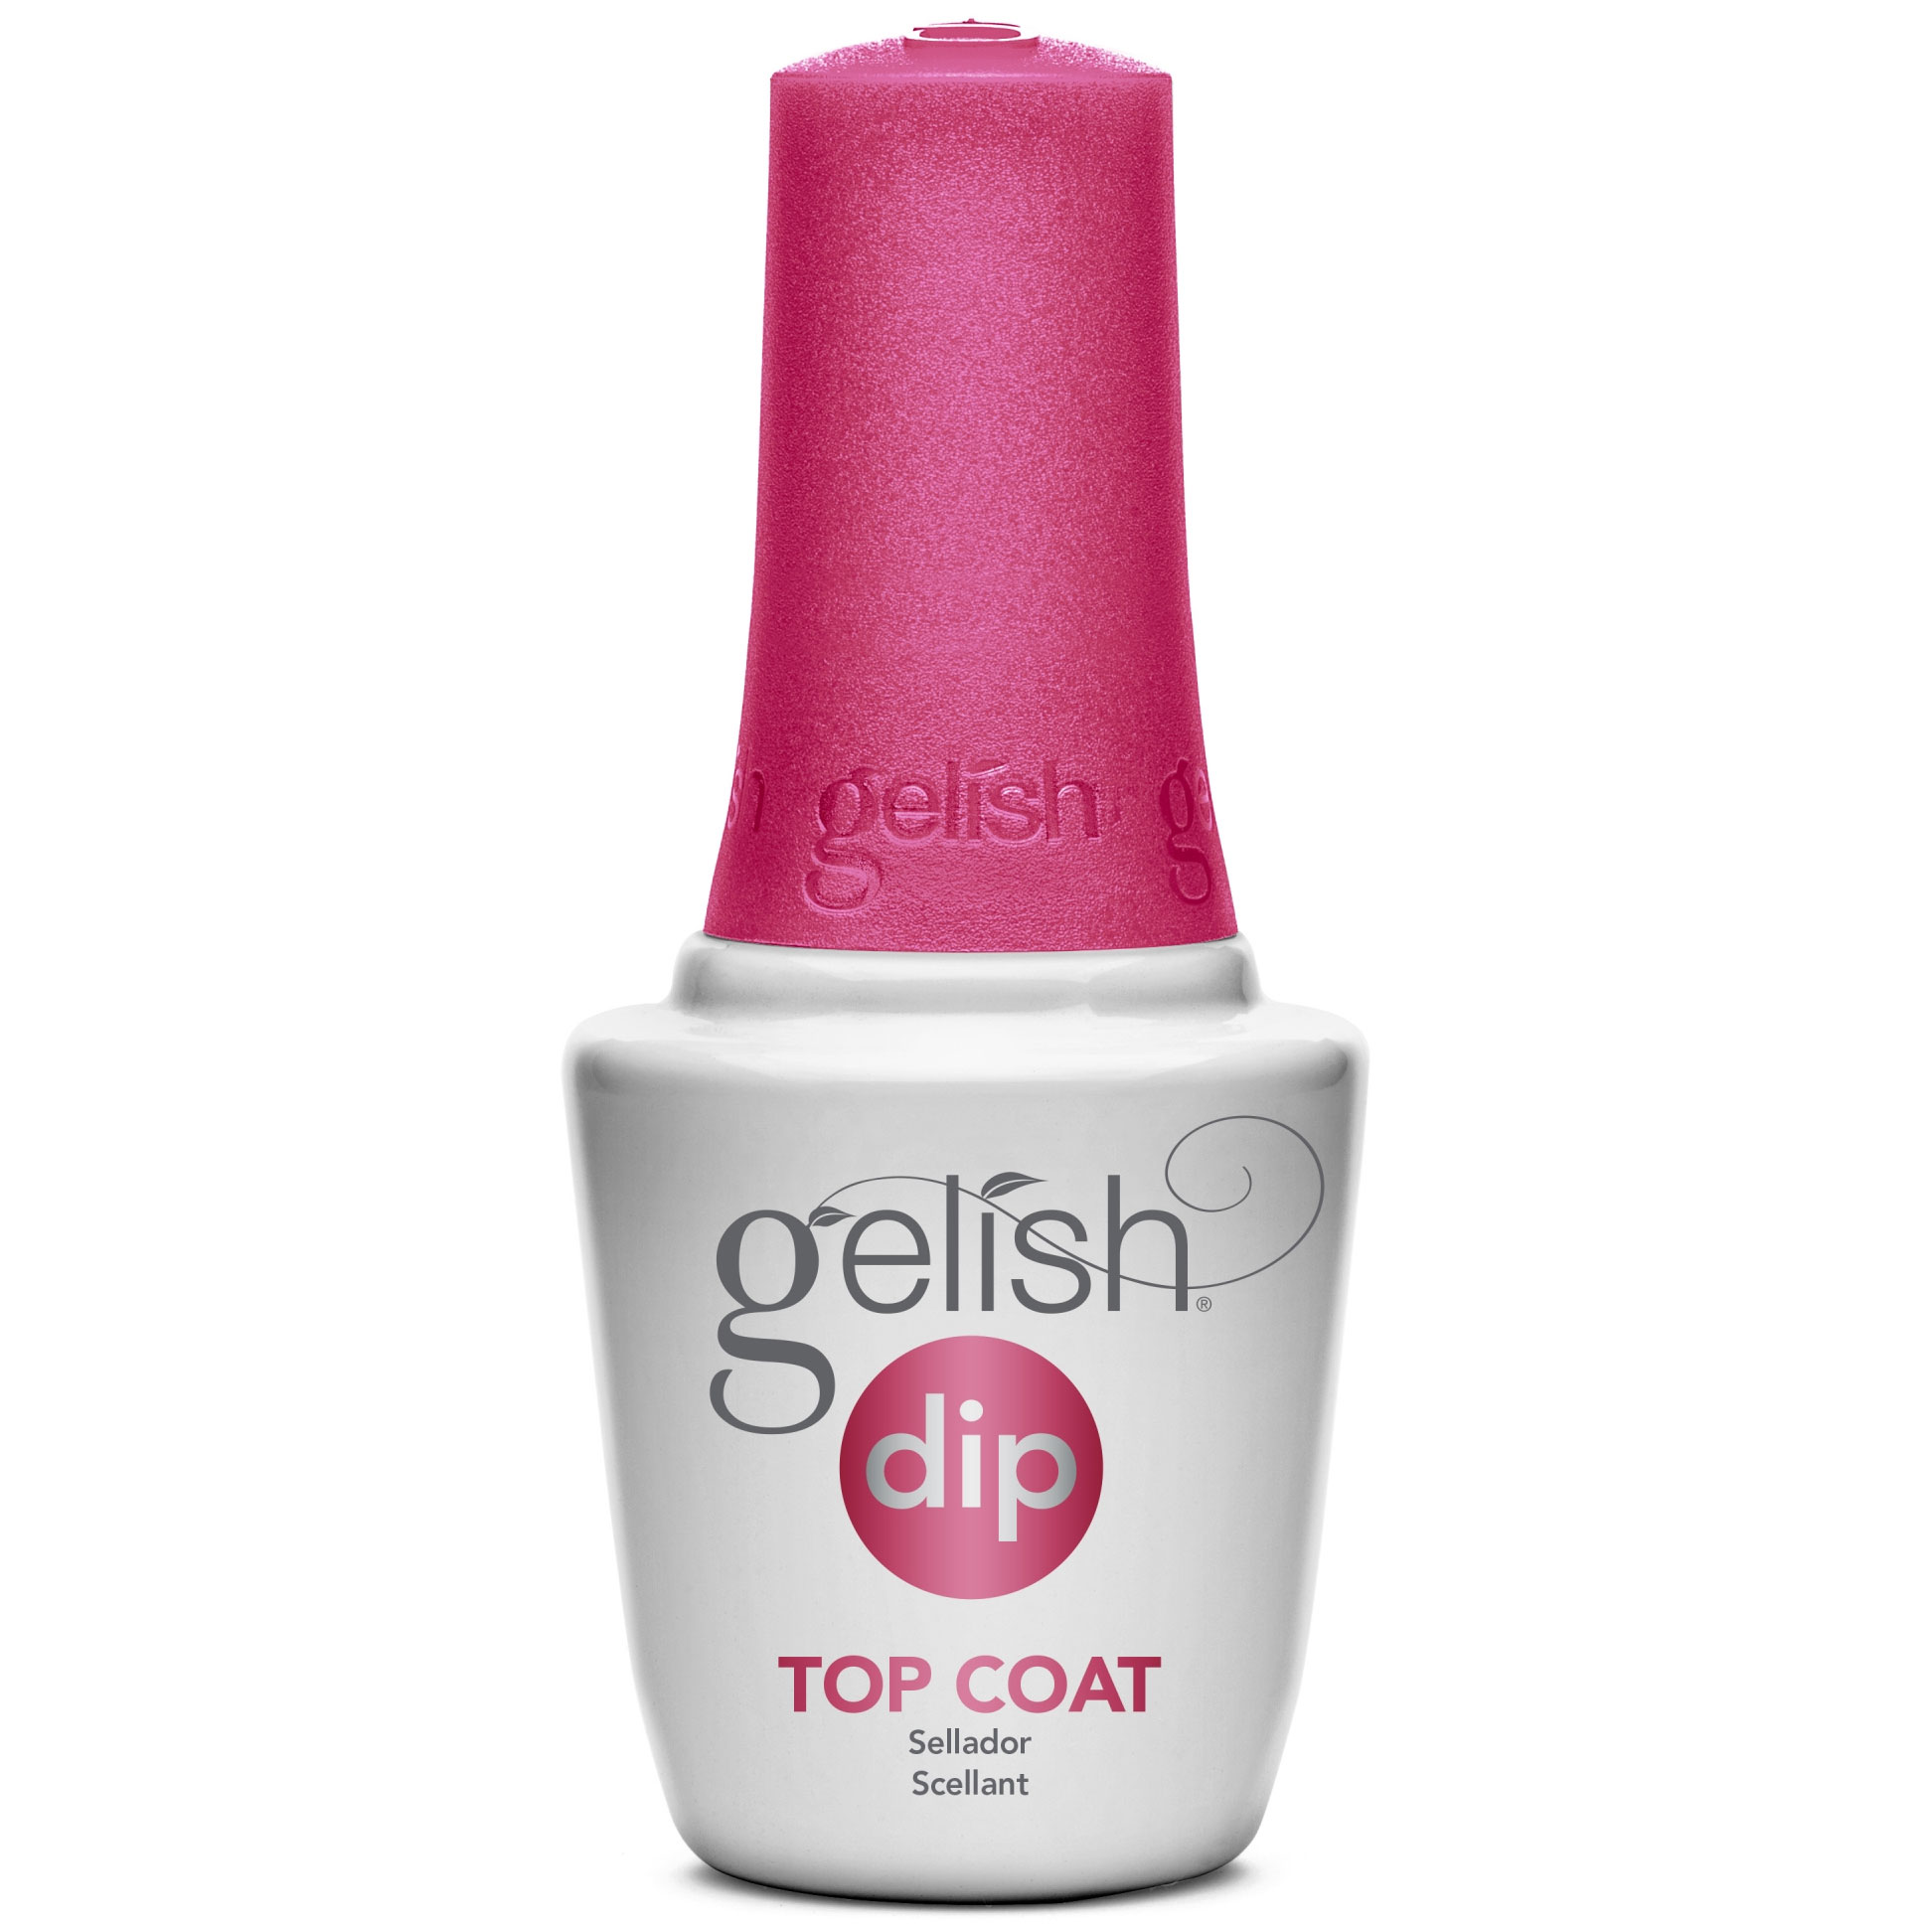 Nail Dip Powder Erfahrung: Gelish Soak Off Basix Acrylic Powder Nail Polish Dip